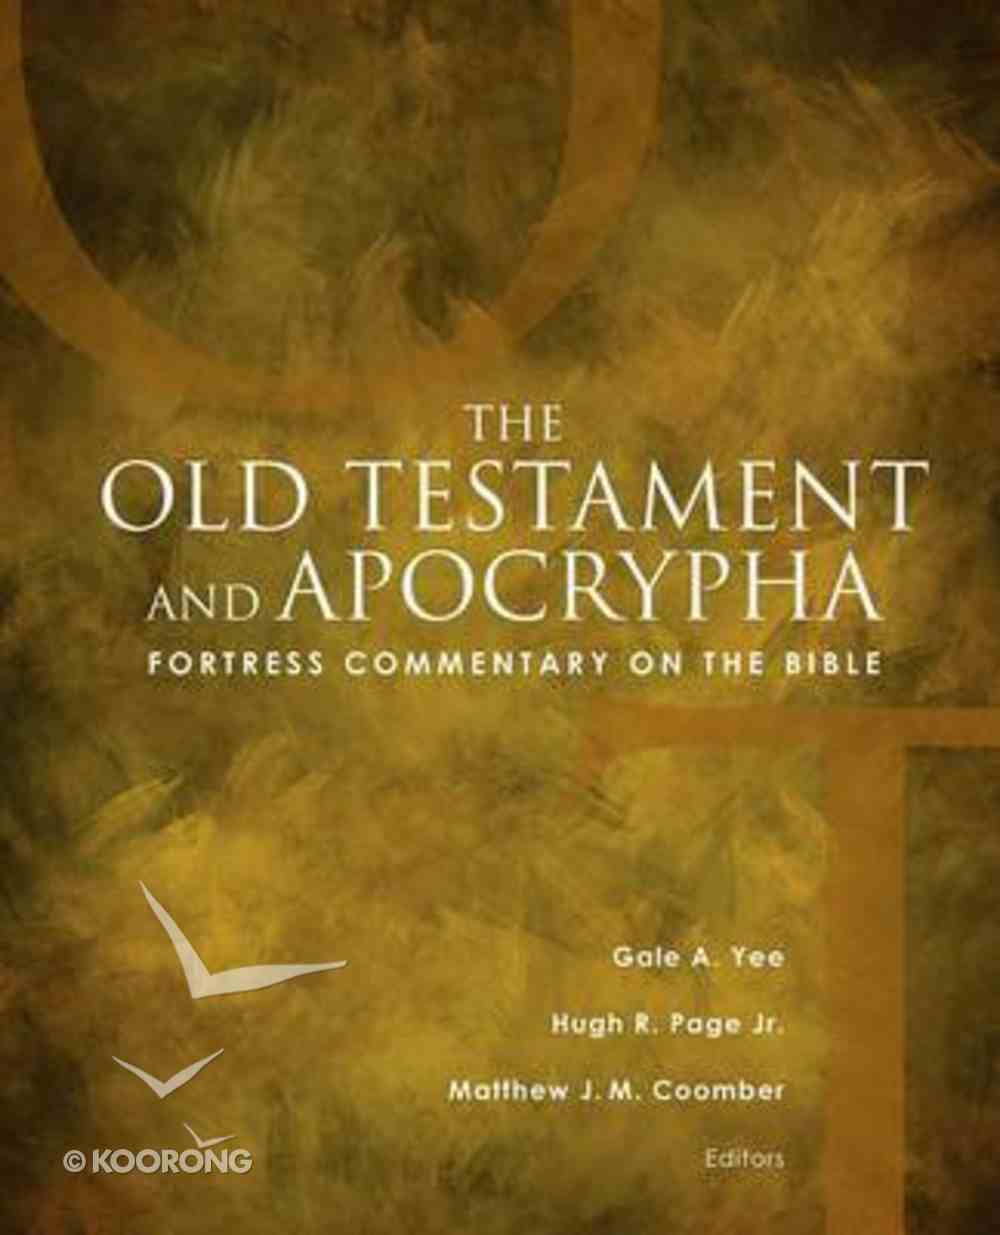 Old Testament and Apocrypha (Fortress Commentary On The Bible Series) Hardback